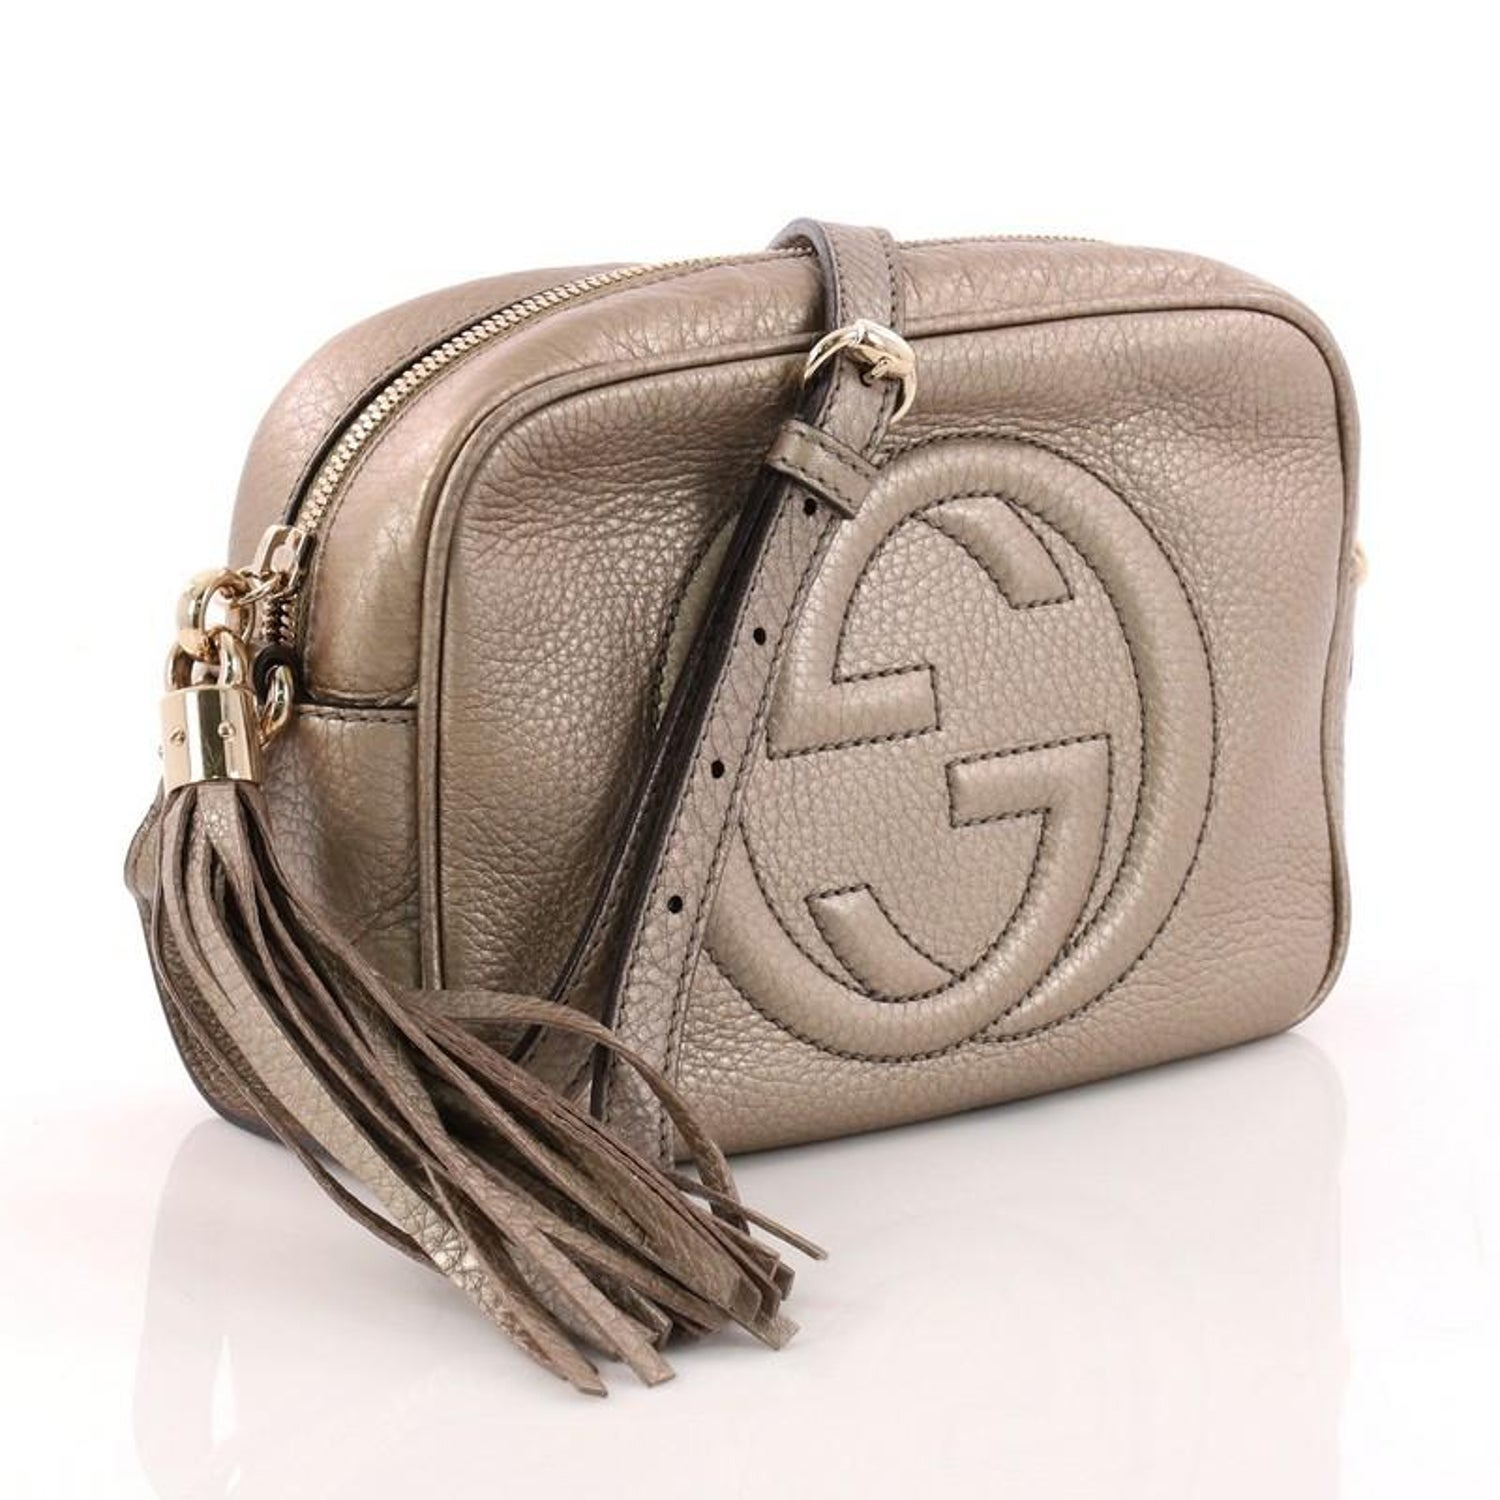 91833618a95 Gucci Soho Disco Crossbody Bag Leather Small at 1stdibs